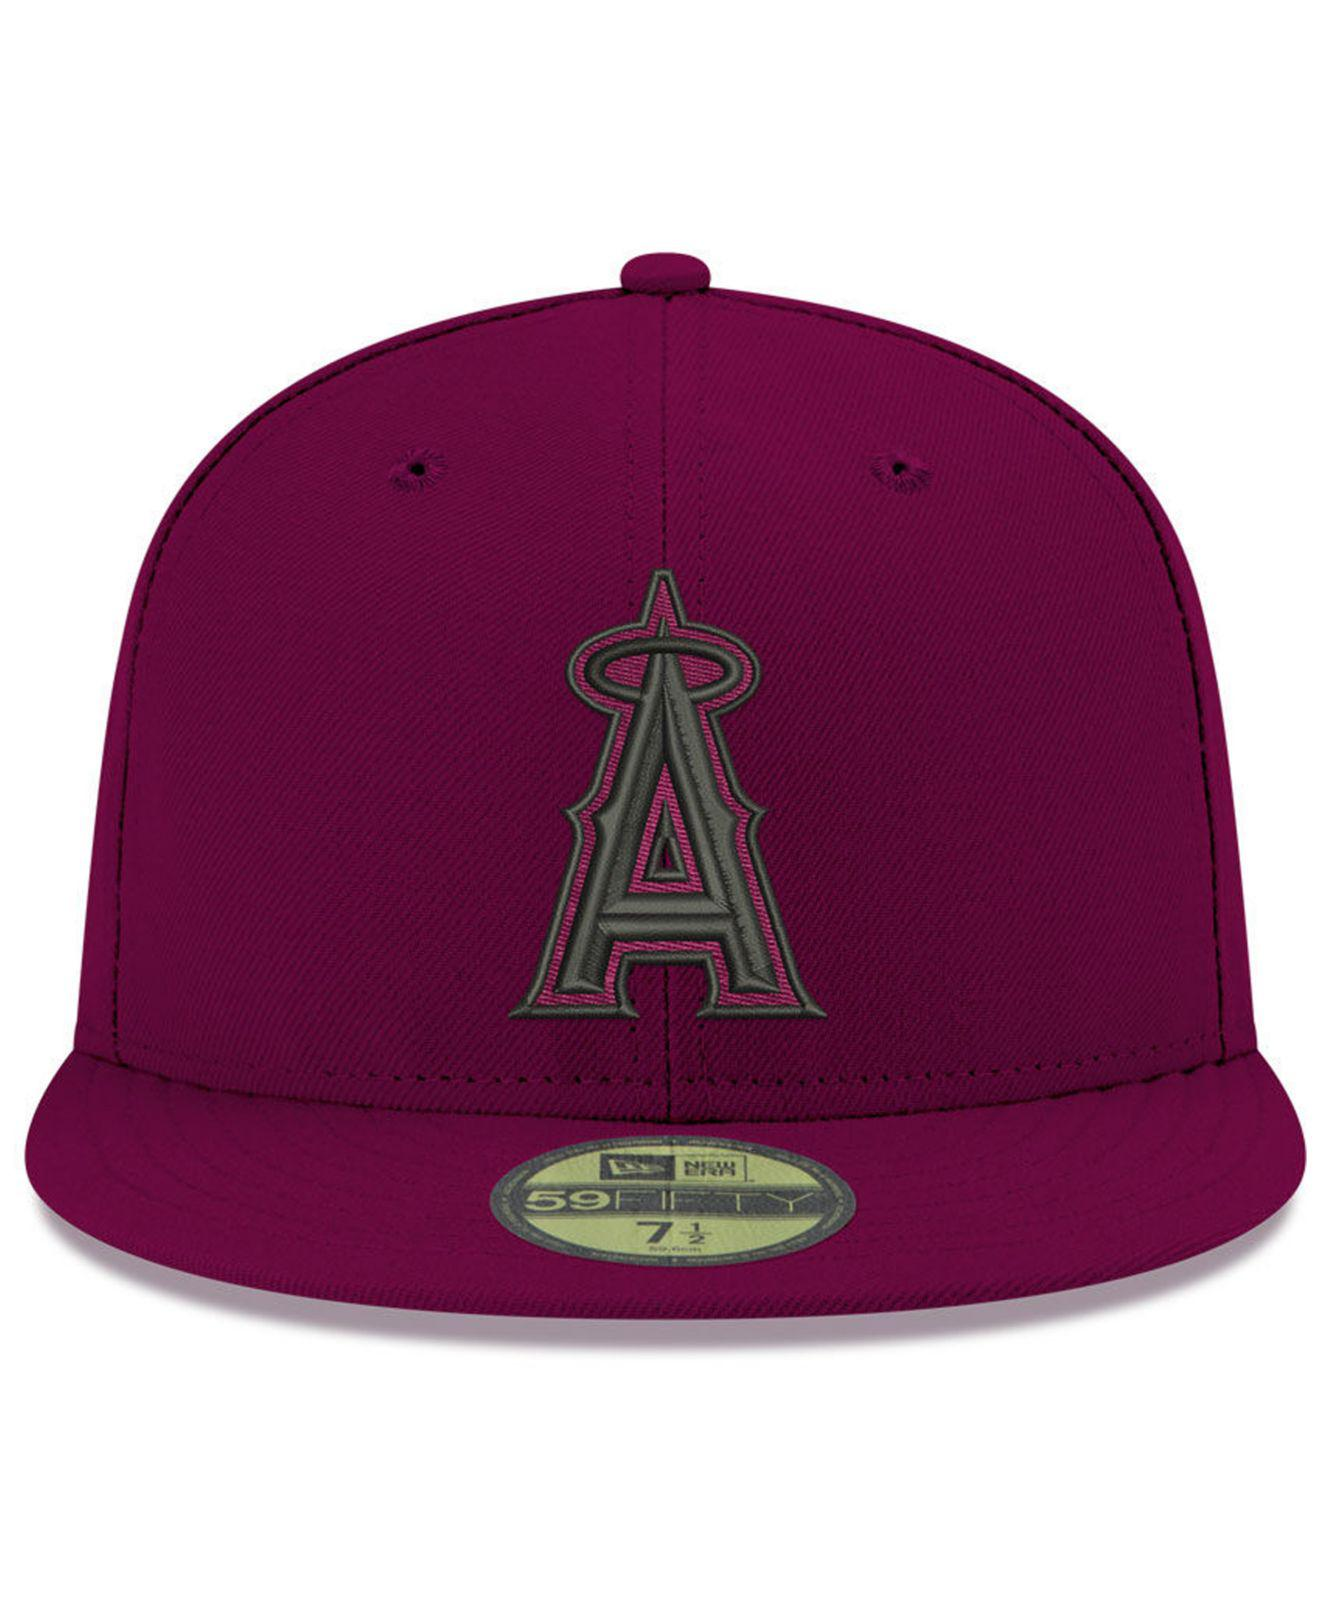 finest selection f4220 91410 KTZ Los Angeles Angels Reverse C-dub 59fifty Fitted Cap in Purple for Men -  Lyst